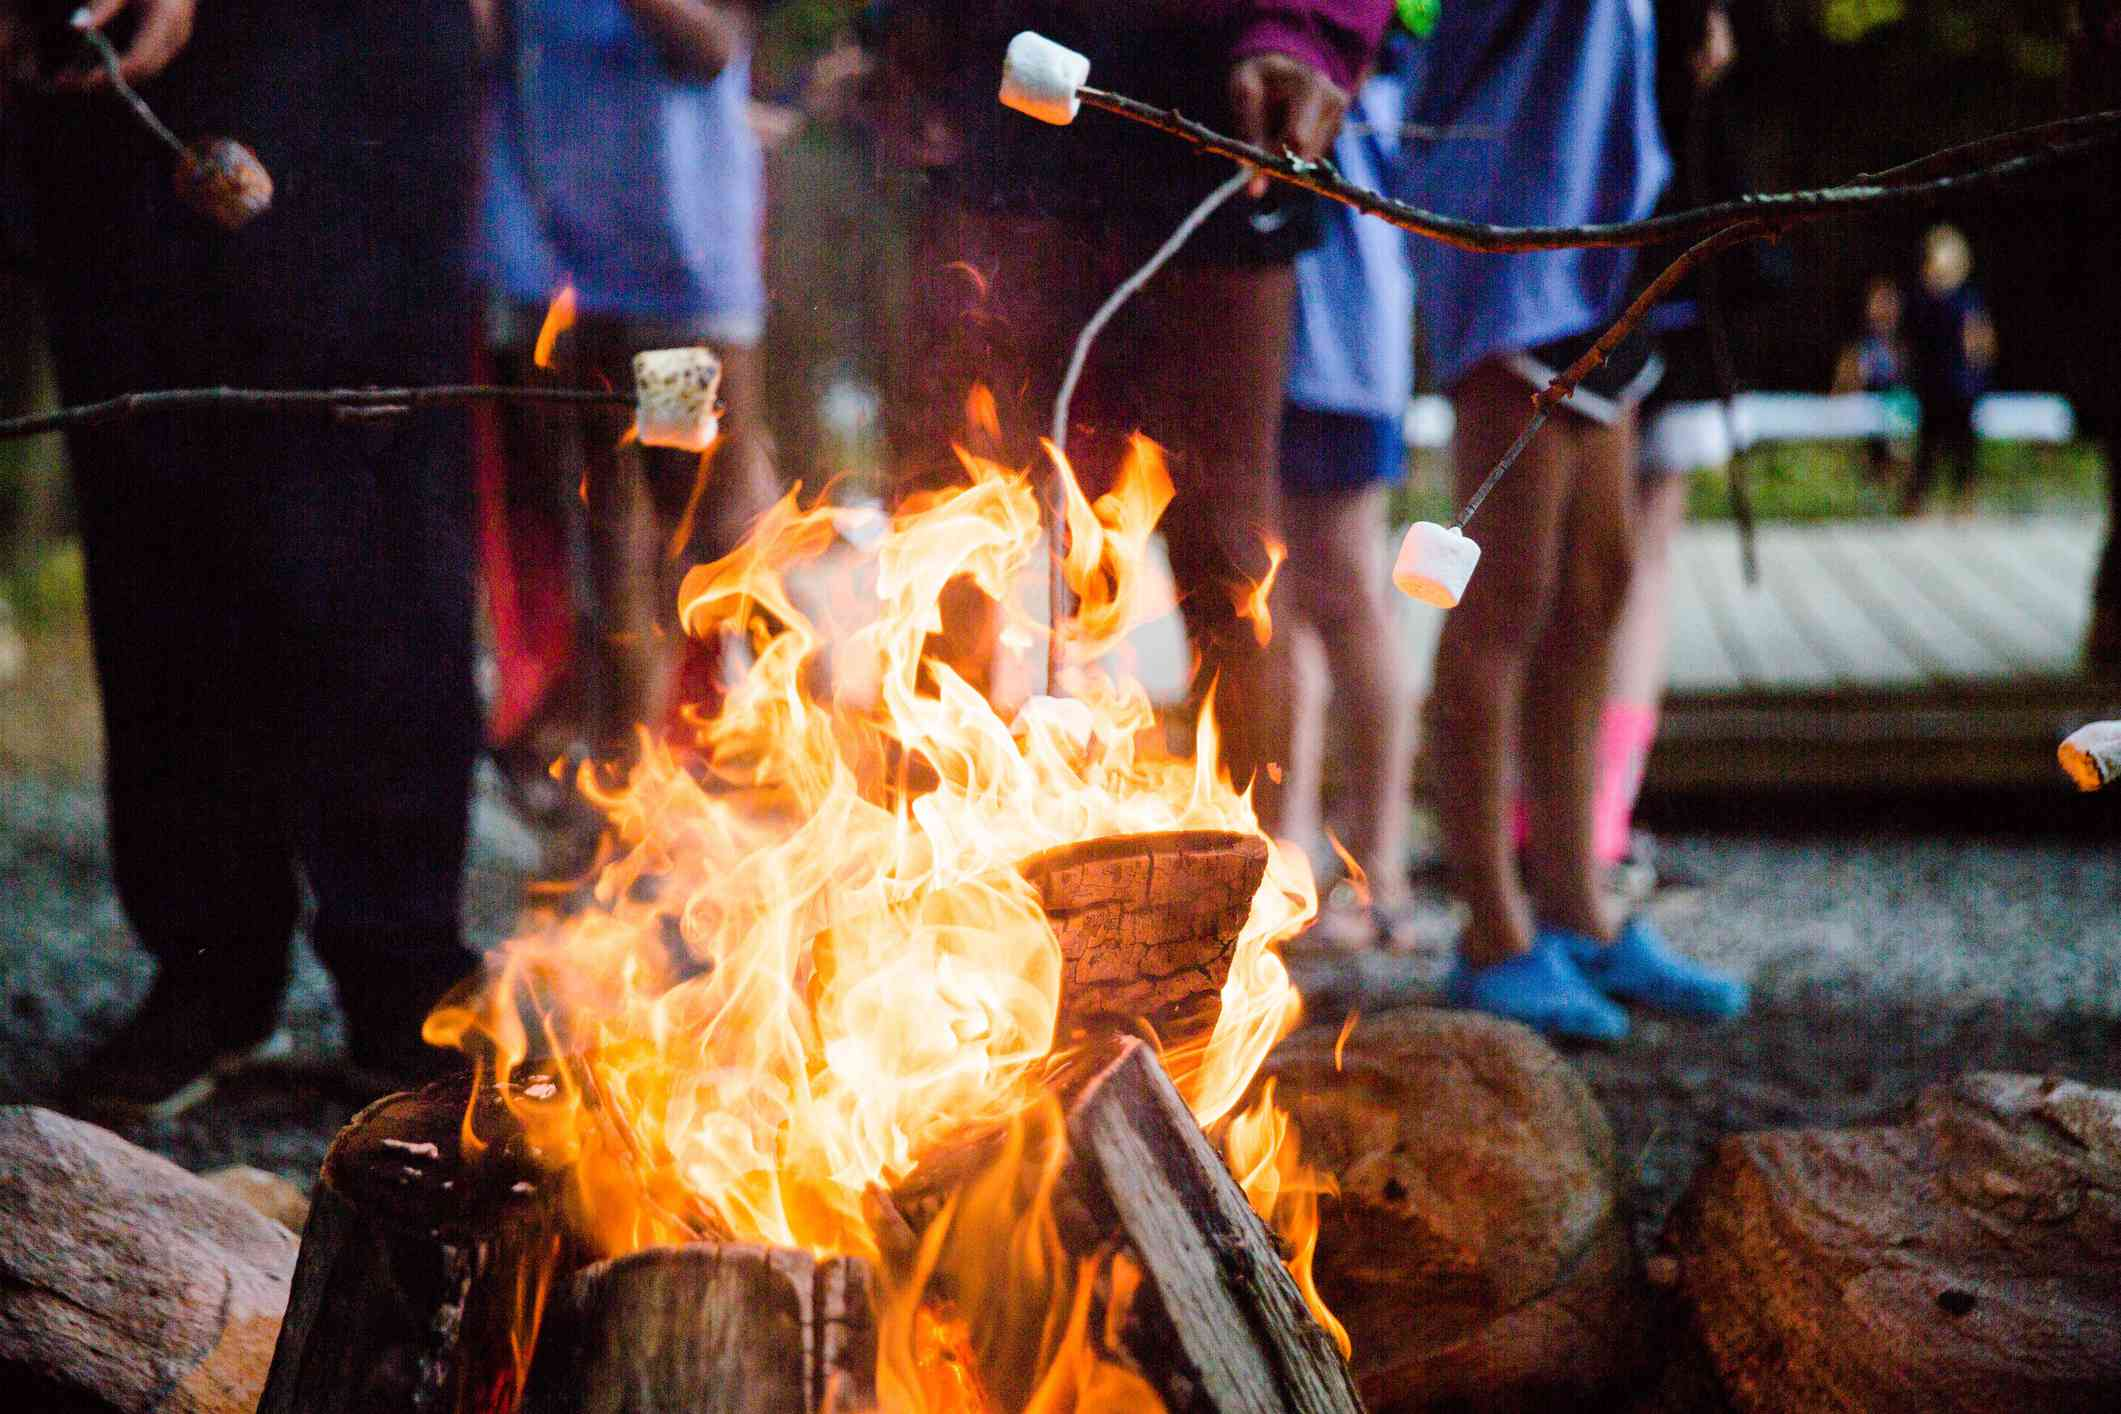 Roaring campfire with roasting marshmallows